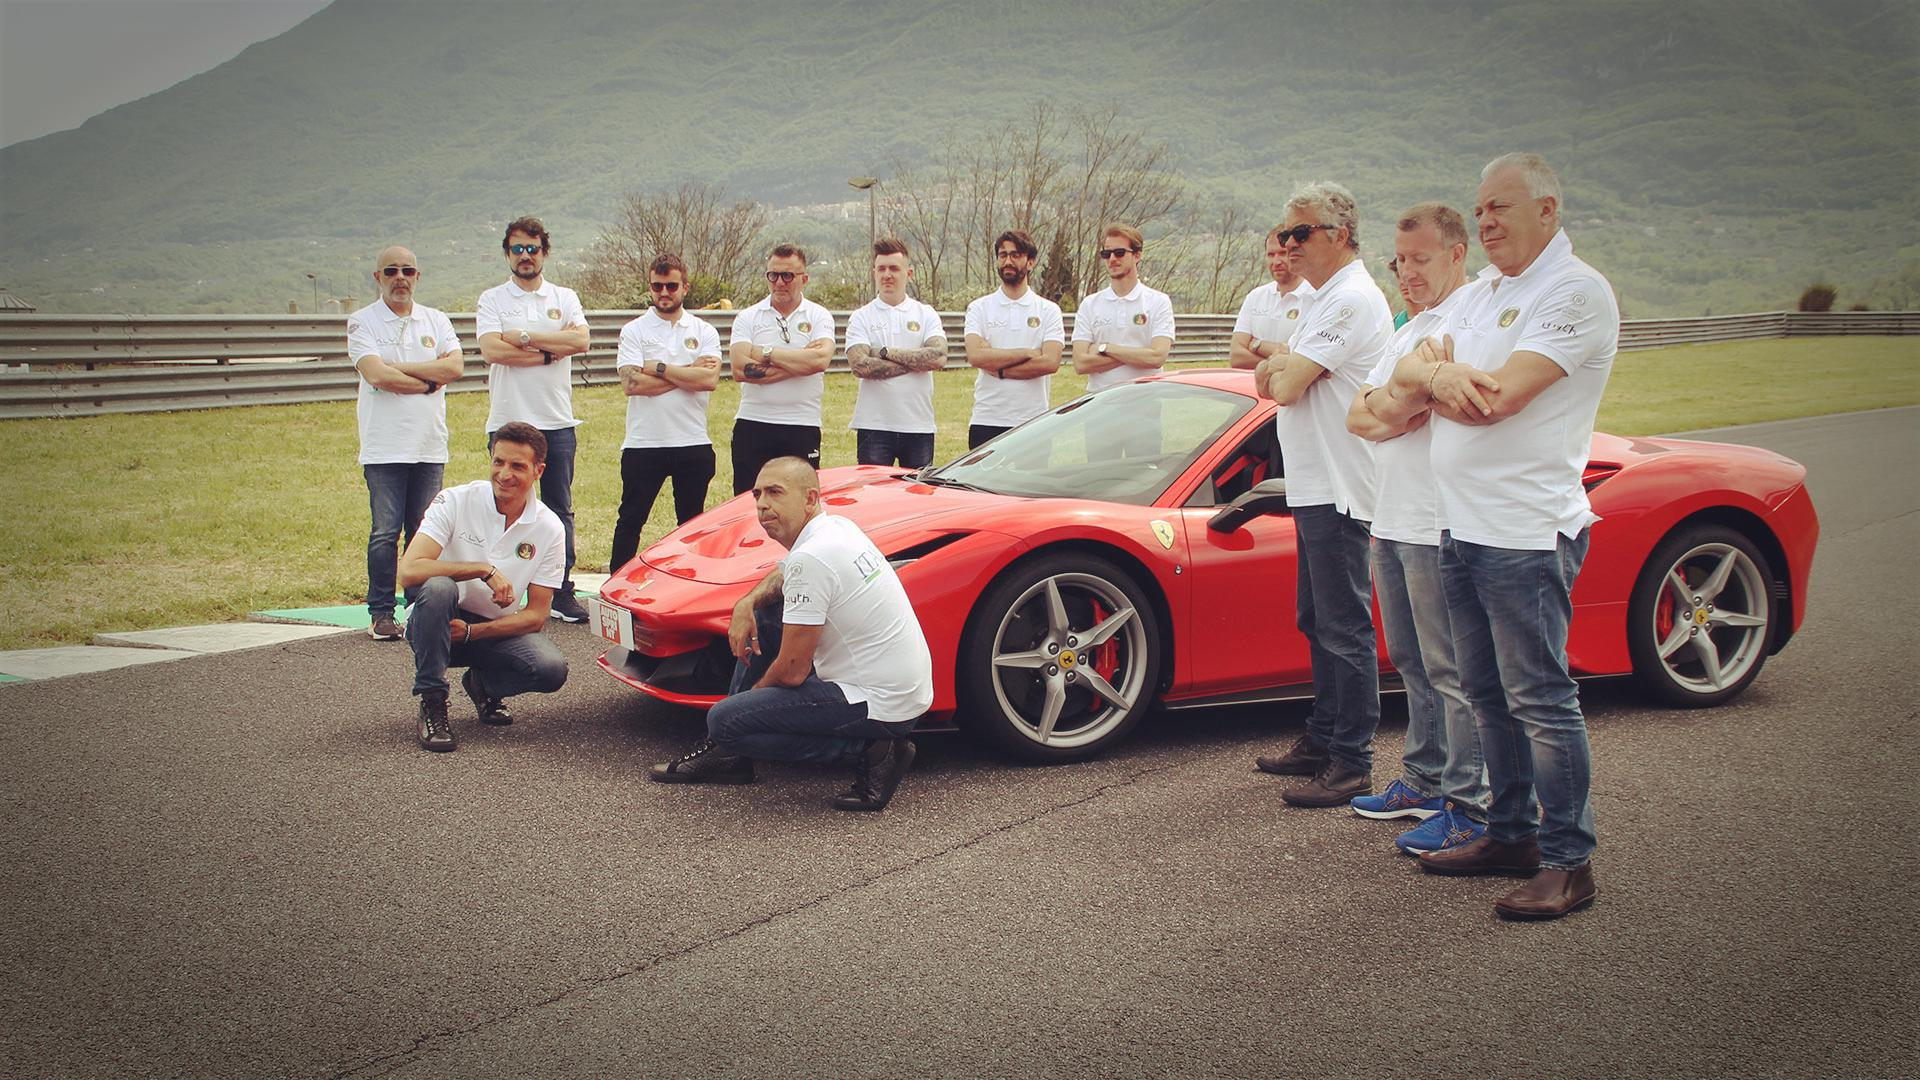 fabio-barone-ferrari-f8-tributo-guinness-world-record-2021-test-(142)